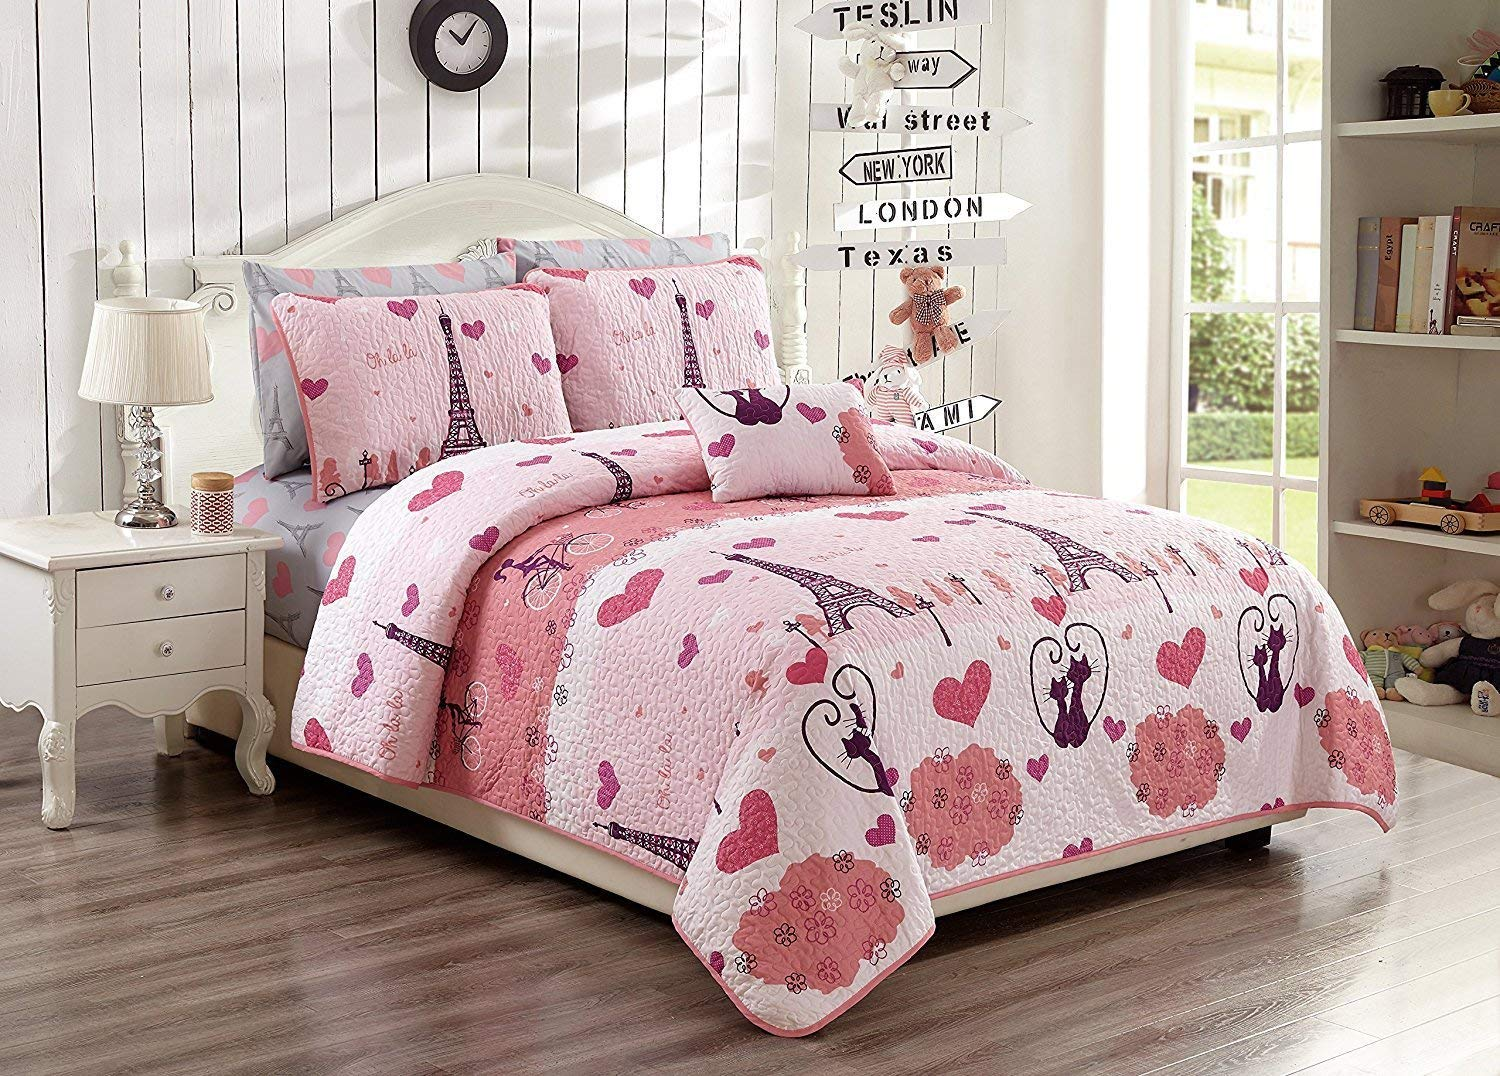 Elegant Home Paris Eiffel Tower Bonjour Design Pink White Printed Reversible Cozy Colorful 4 Piece Quilt Bedspread Set with Pillowcases and Decorative Pillow for Kids/Girls (Full/Queen) by Elegant Home Decor